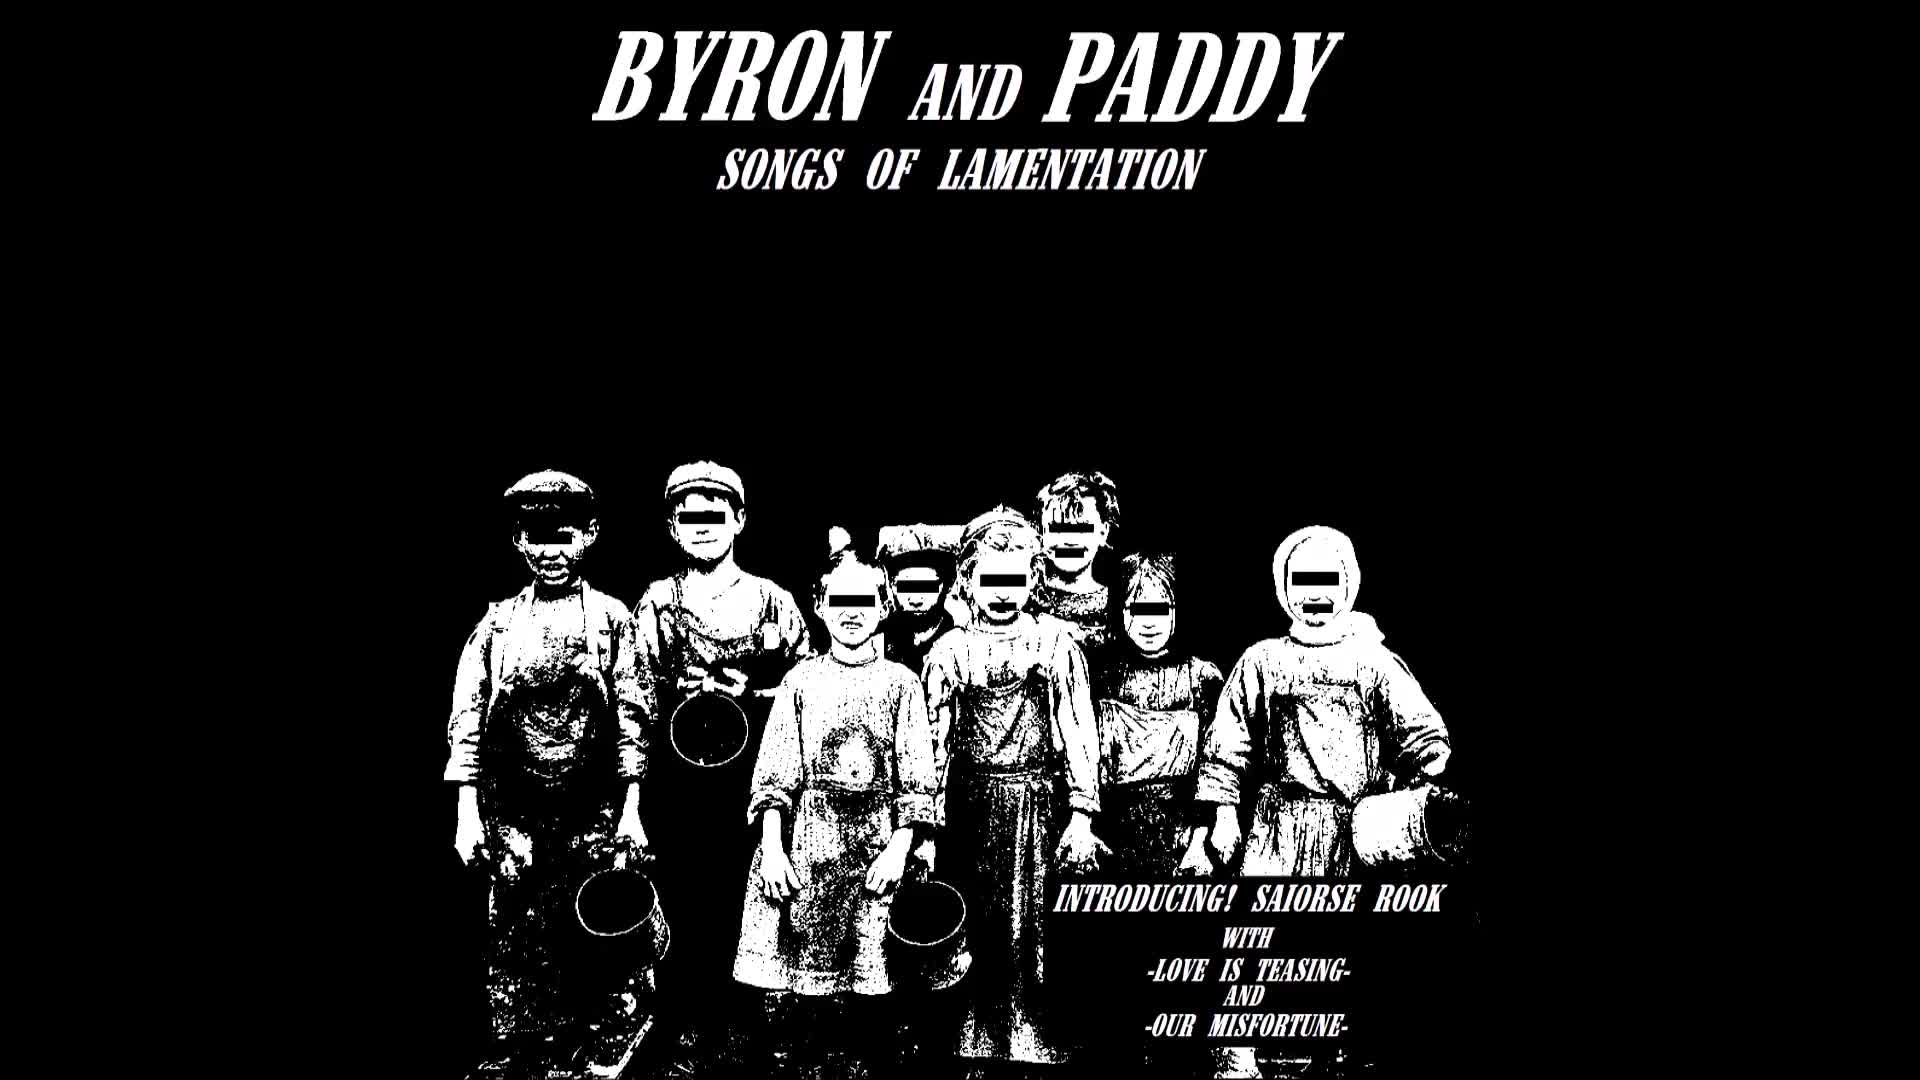 Scum From the New York Times by Paddy Tarleton and Byron de la Vandal [Songs of Lamentation track 3]